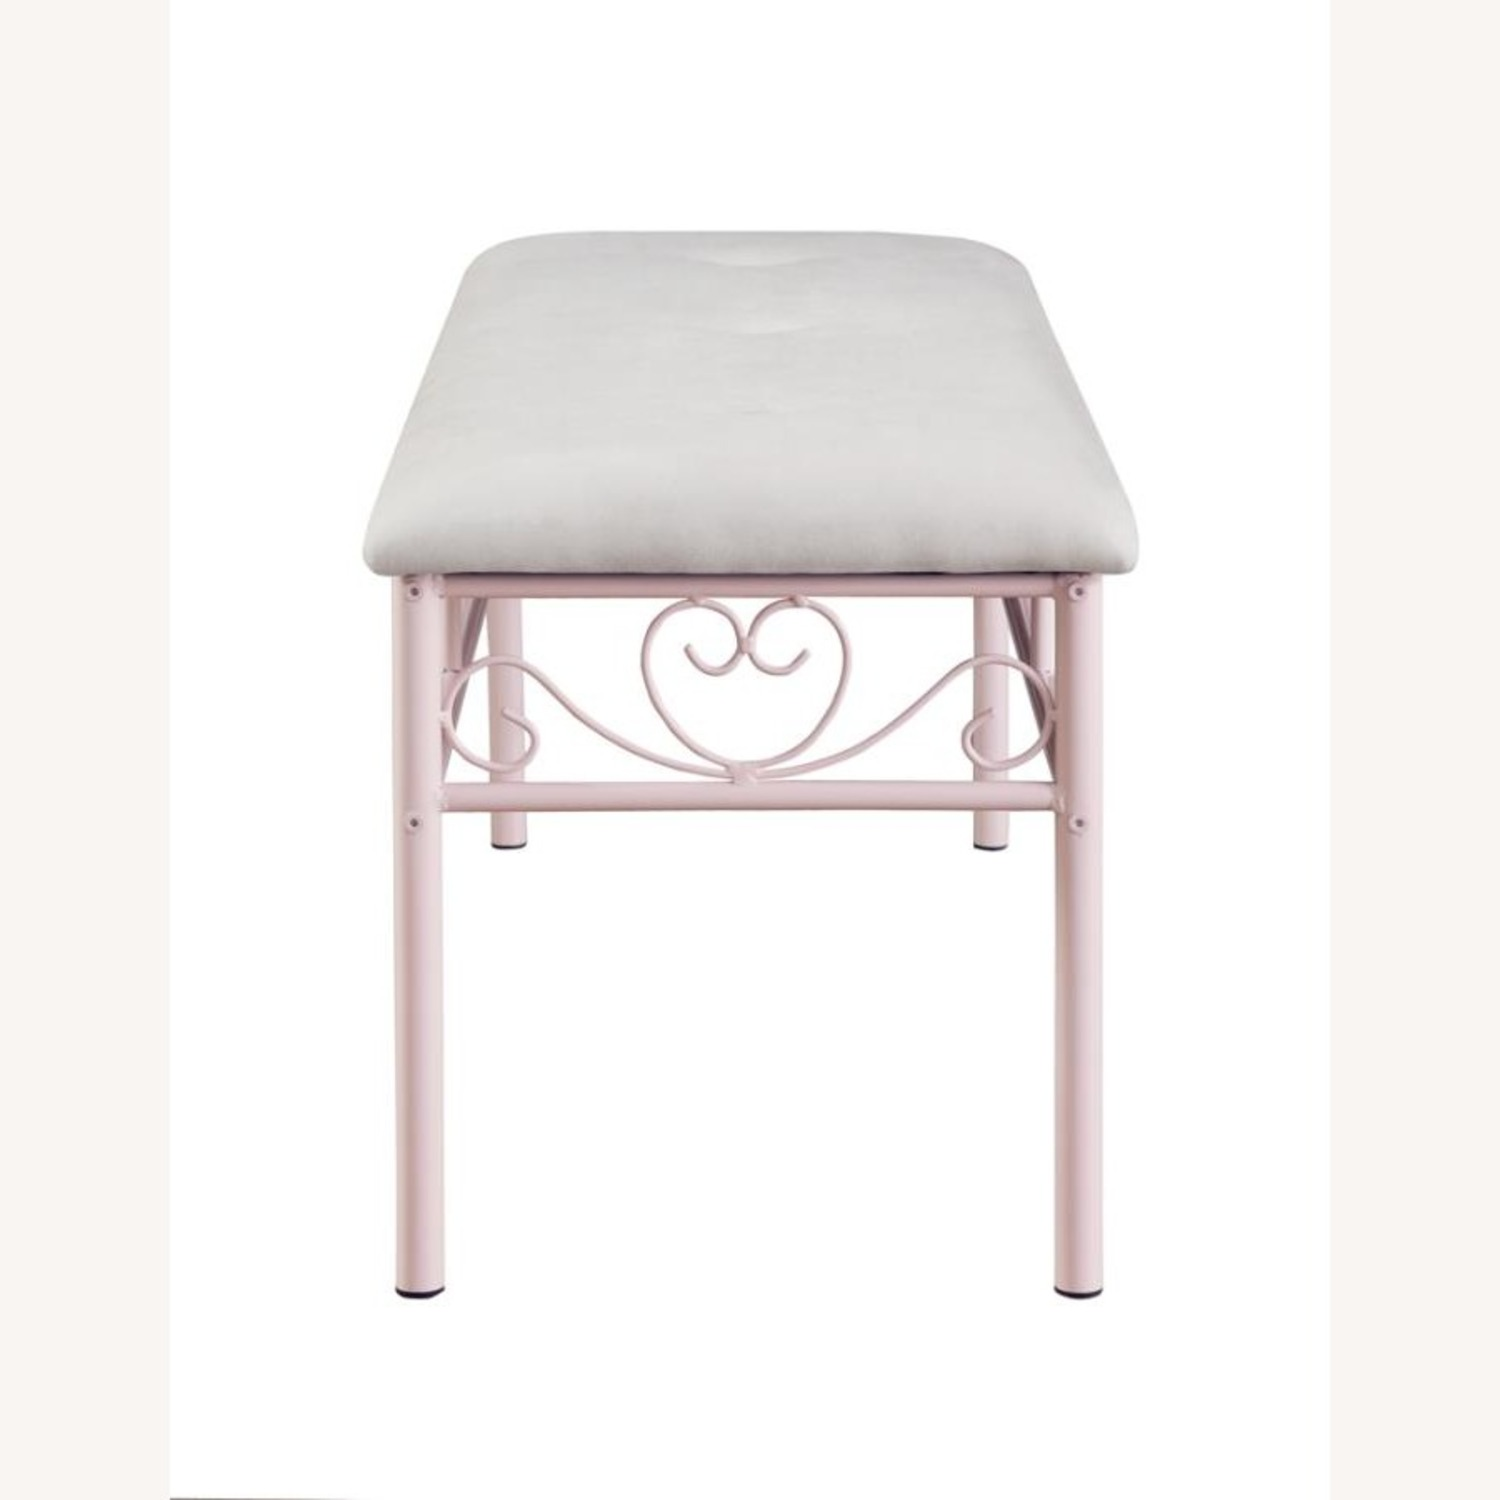 Bench In Powder Pink W/ Ivory Fabric Upholstery - image-2